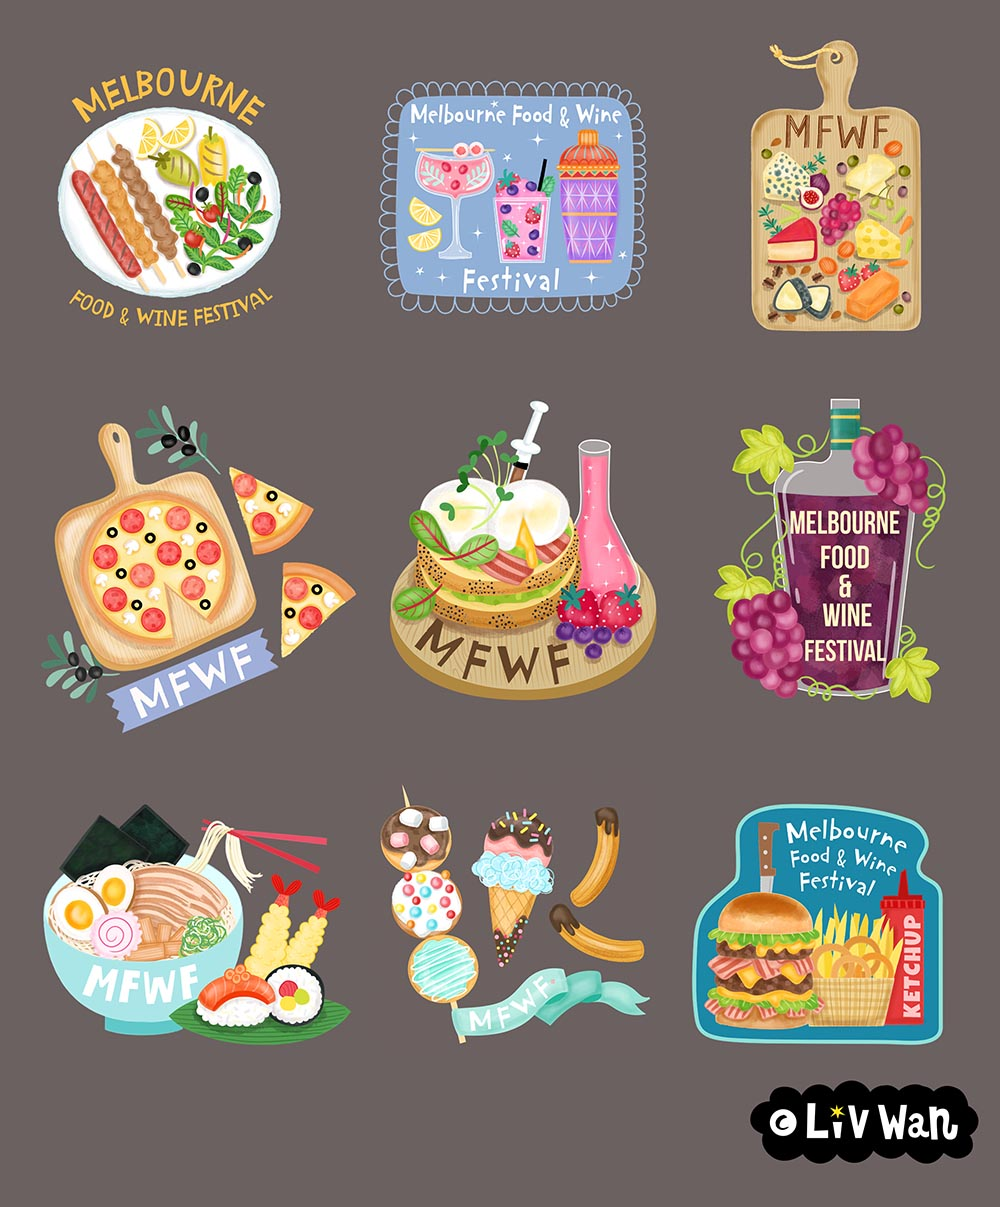 melbourne food and wine festival snapchat stickers